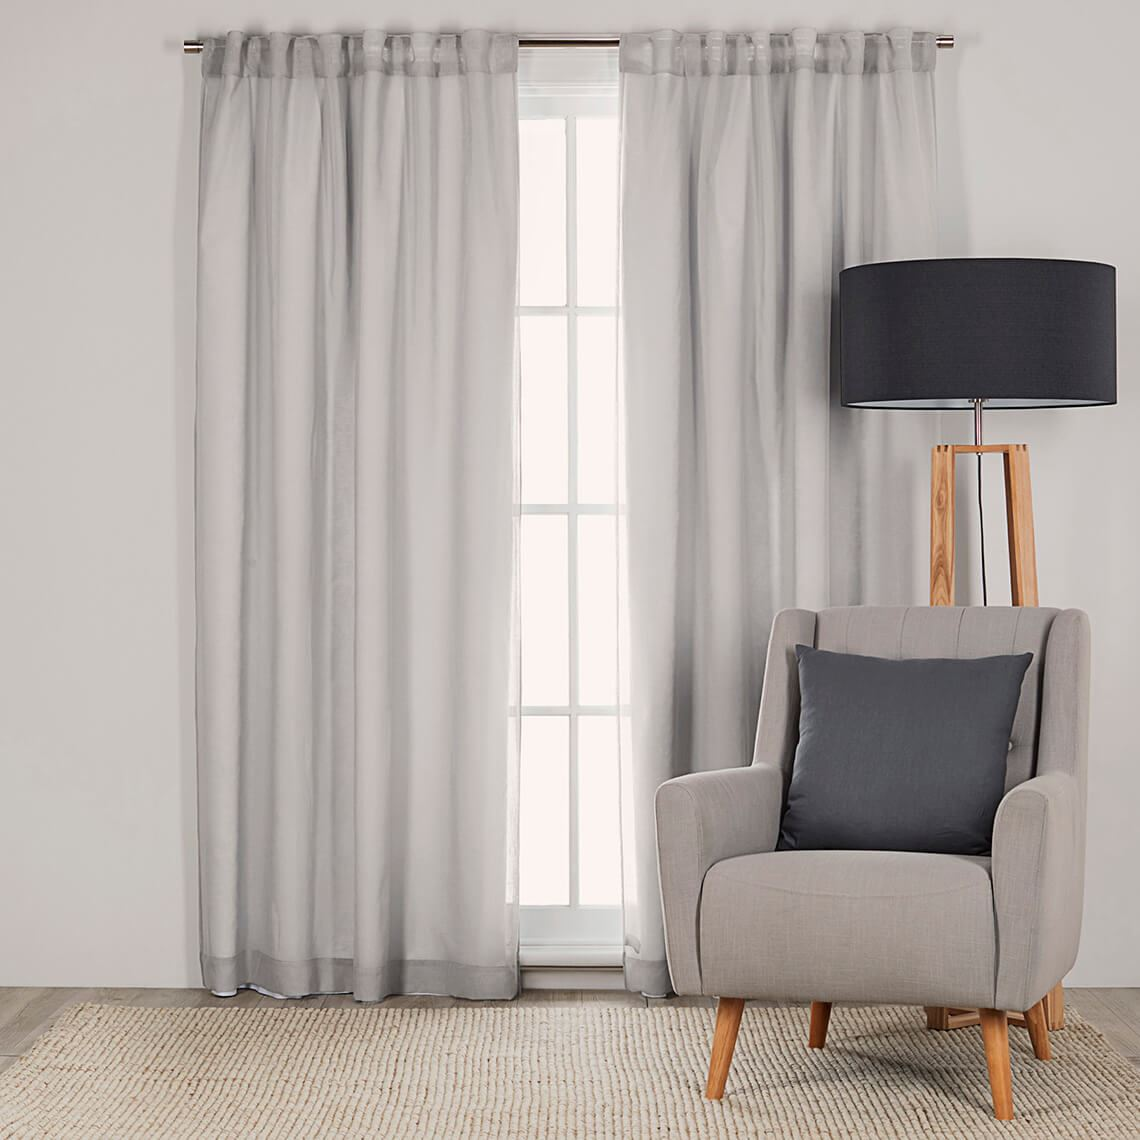 Curtain Liner Size W 180cm x D 0cm x H 245cm in White 100% Polyester/Stainless Steel Freedom by Freedom, a Curtains for sale on Style Sourcebook